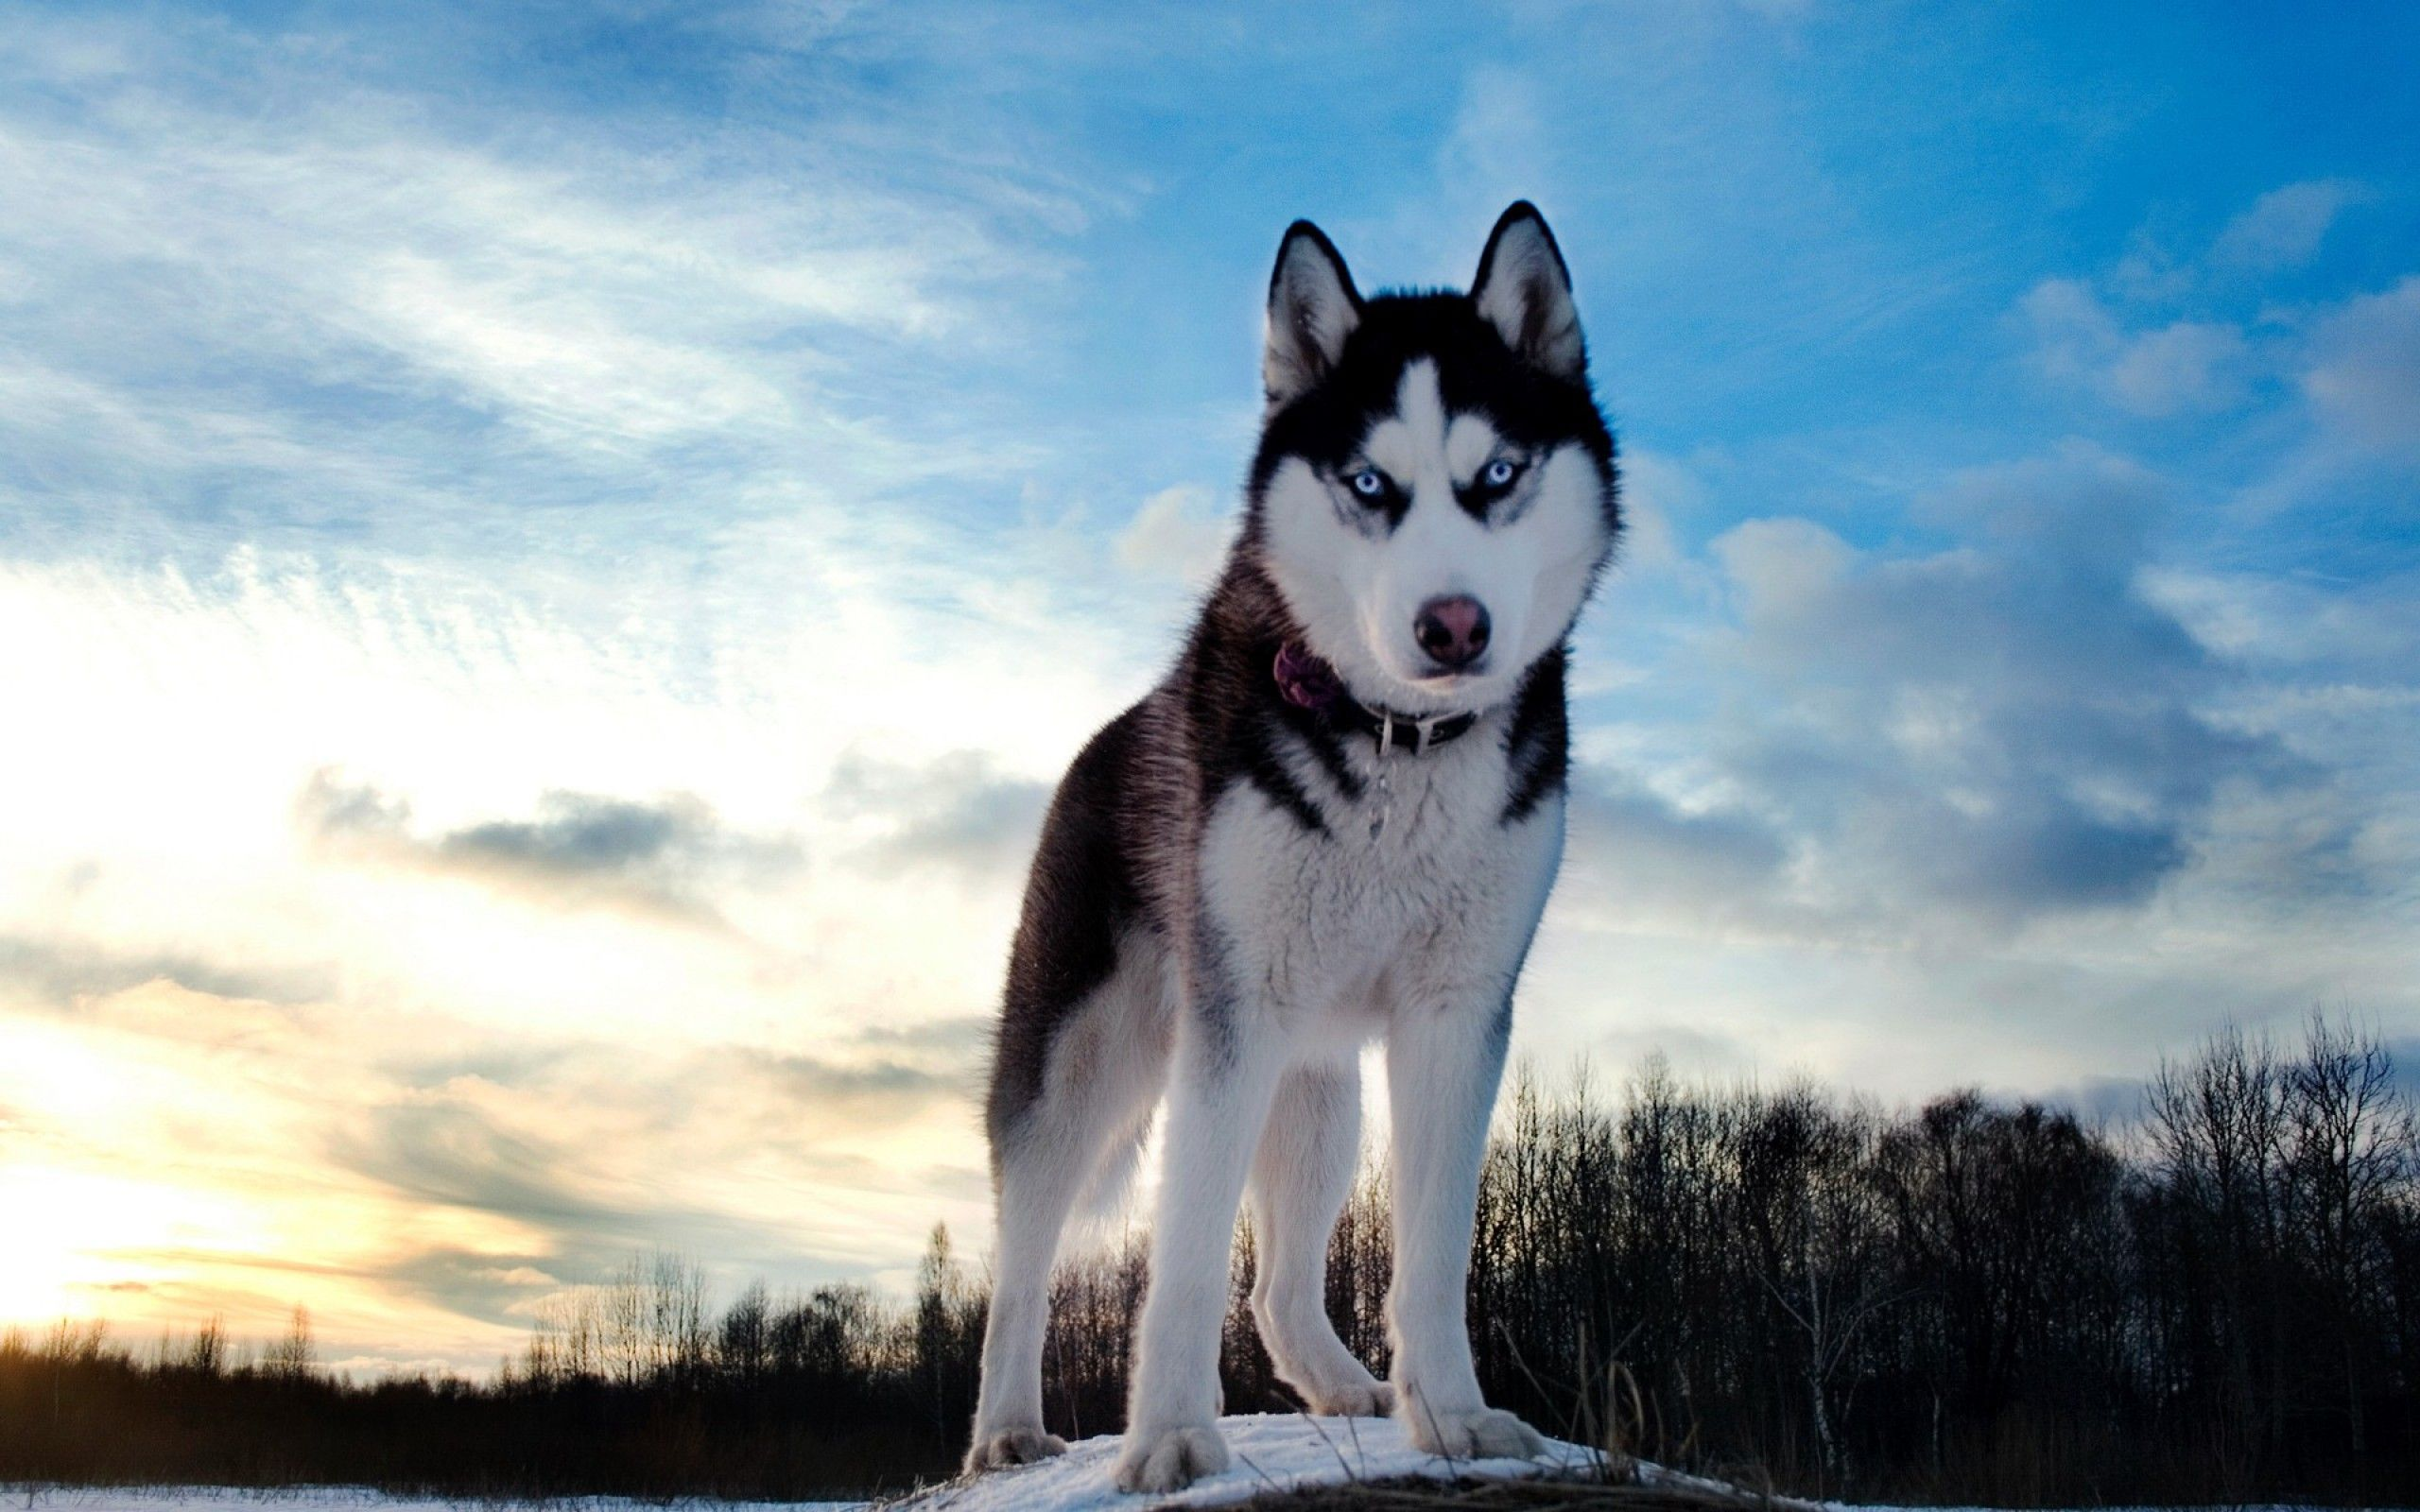 Siberian Husky Wallpapers - Wallpaper Cave | Android | Pinterest ...